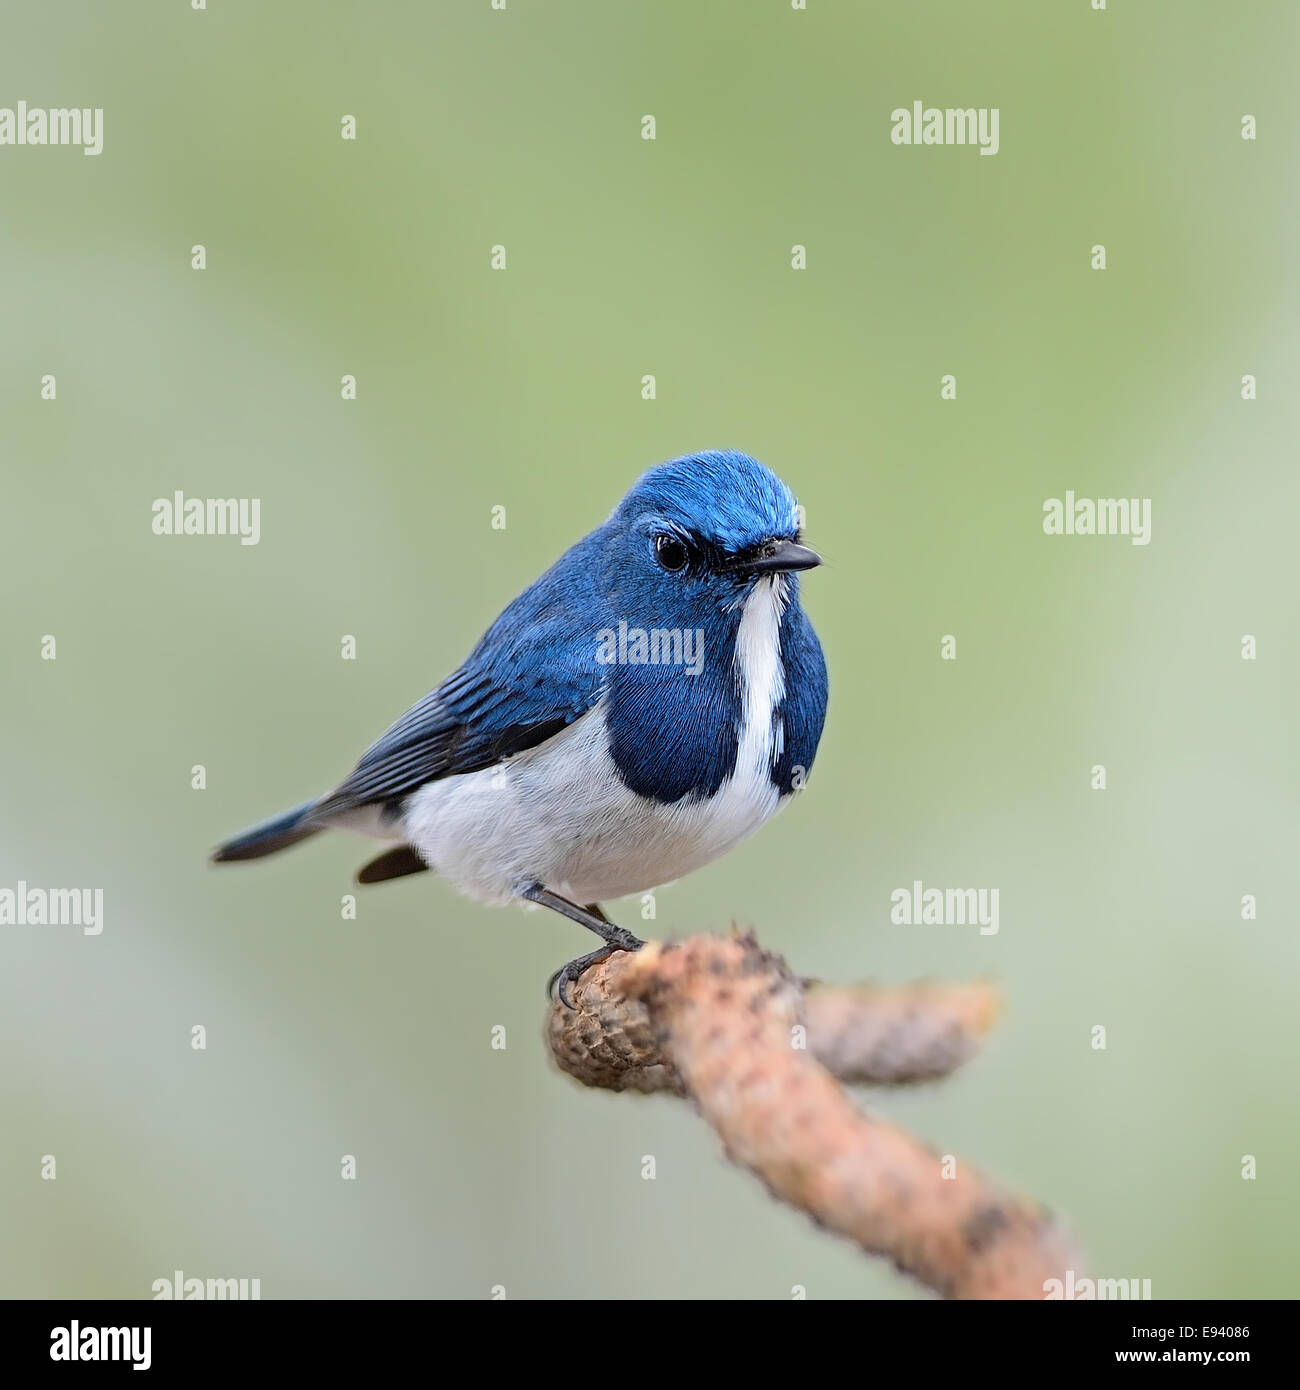 Colorful blue and white bird, male Ultramarine Flycatcher (Ficedula superciliaris) , perching on a branch - Stock Image